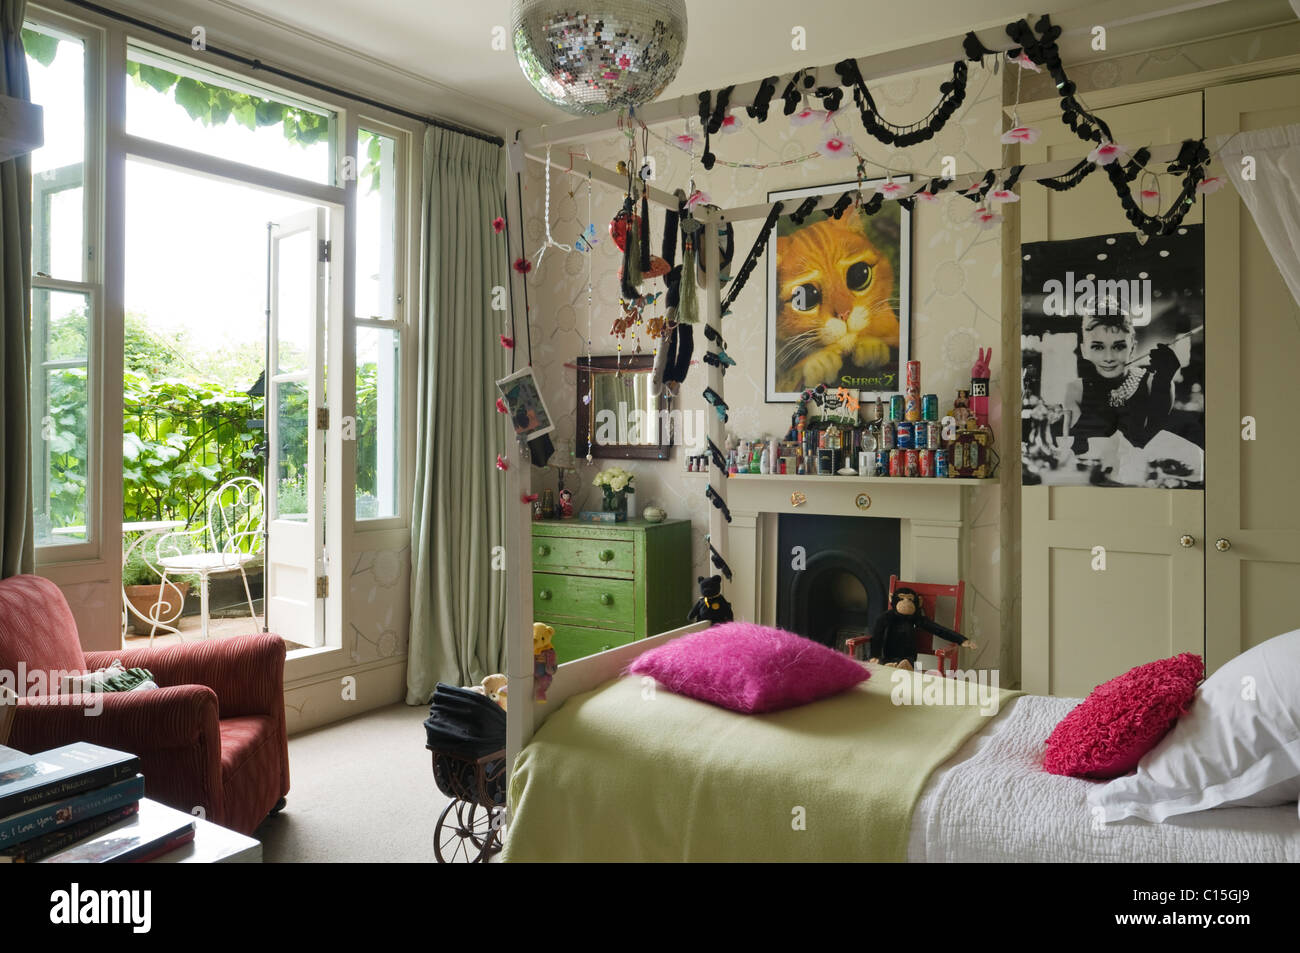 Single four poster bed in teenage girl's bedroom - Stock Image